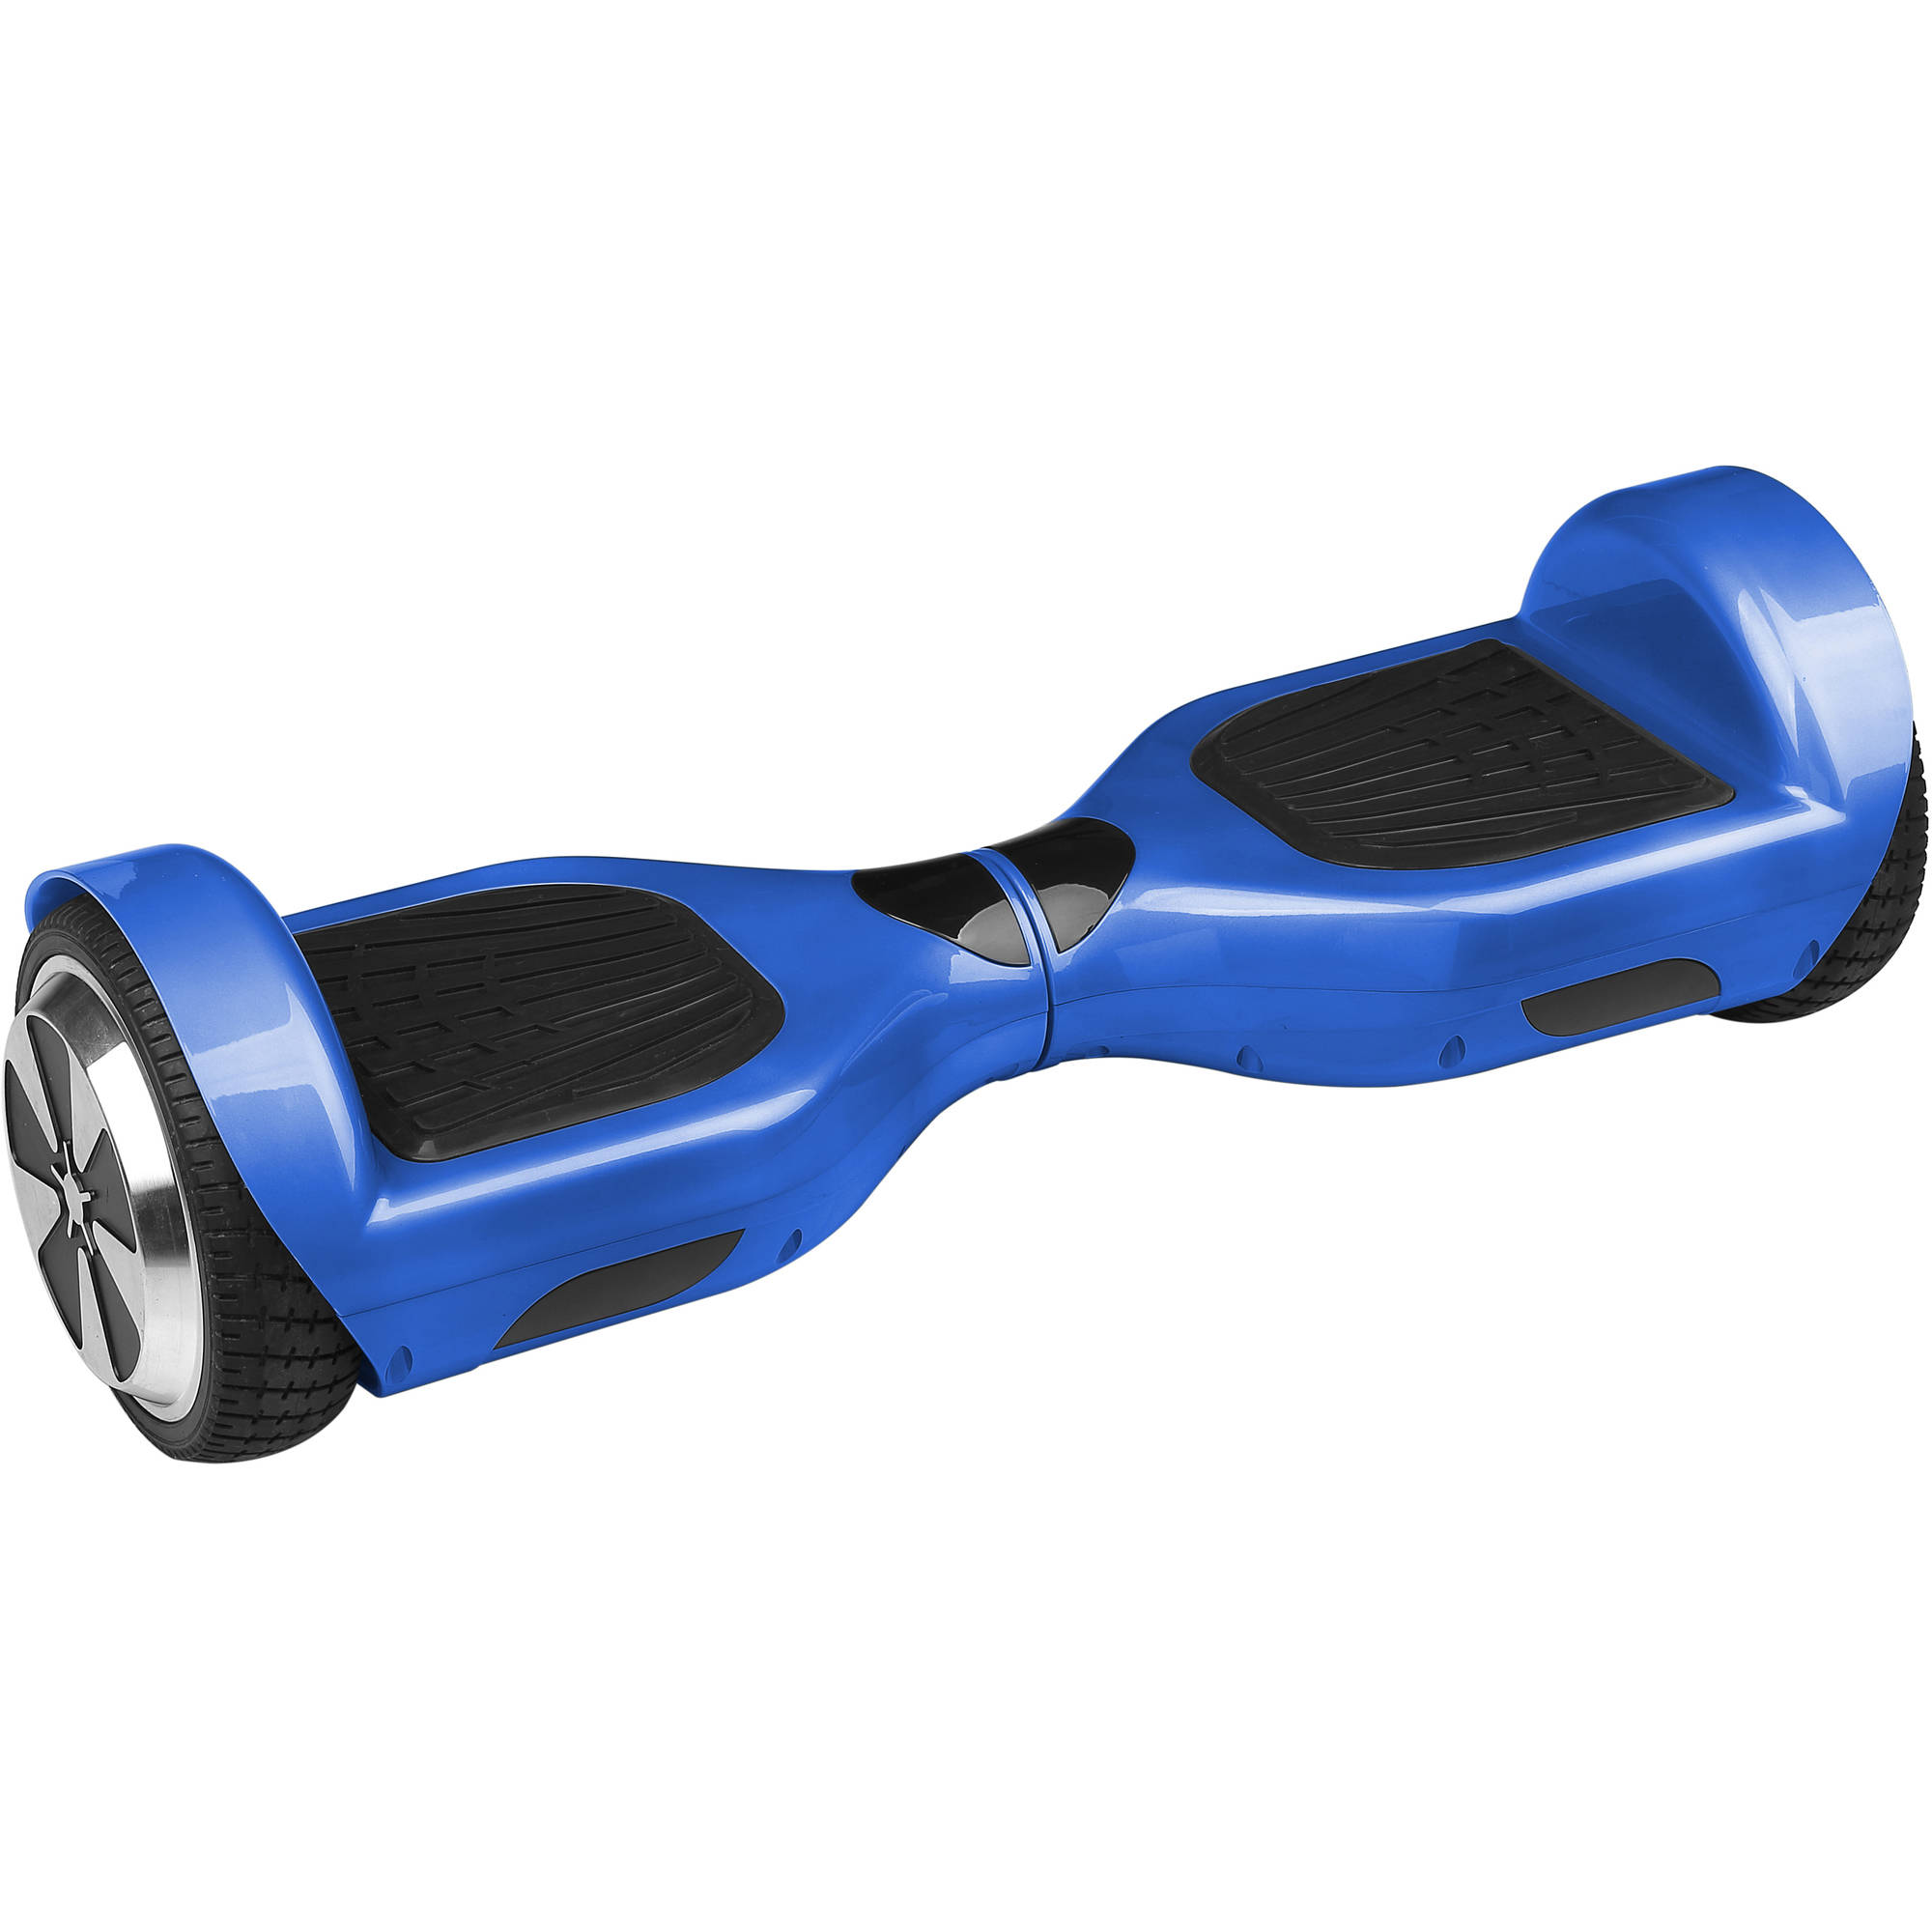 "Image of Air Ride Pro 6.5"" Self-Balancing Electric Hoverboard"